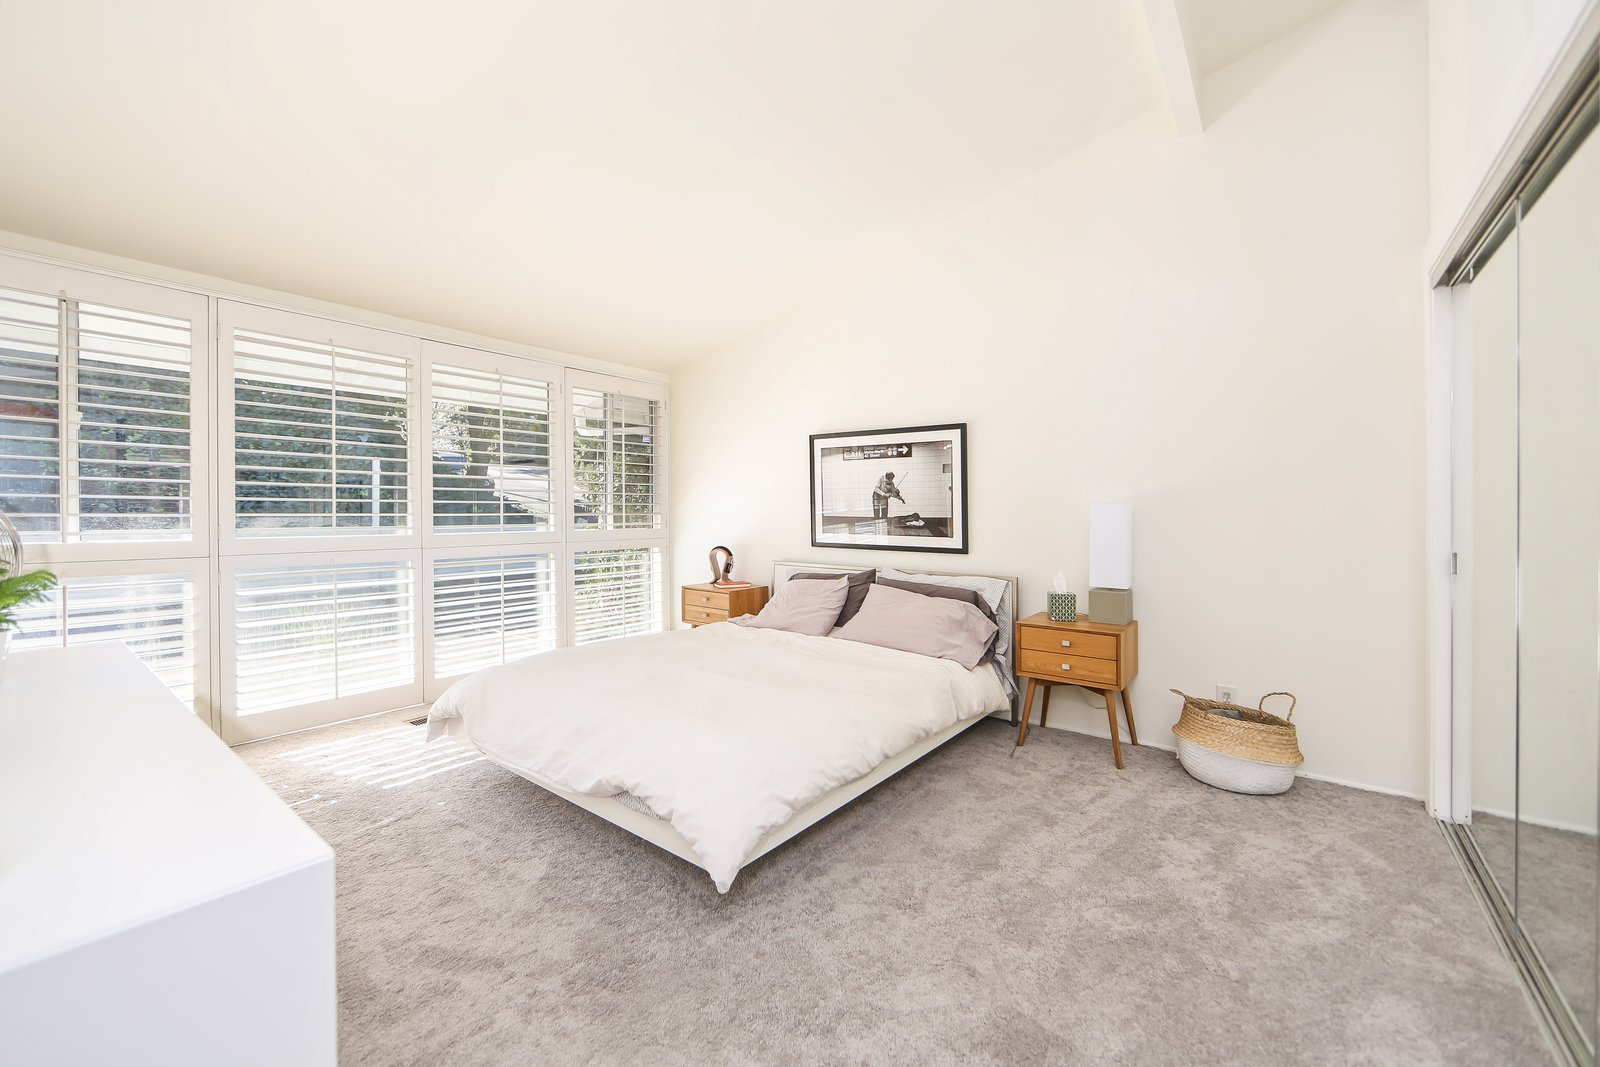 A past renovation included the addition of carpets into the three bedrooms, which have been left clean and simple. If You Crave Bright, Light-Filled Spaces, This Midcentury Home For Sale Could Be the One - Photo 8 of 10